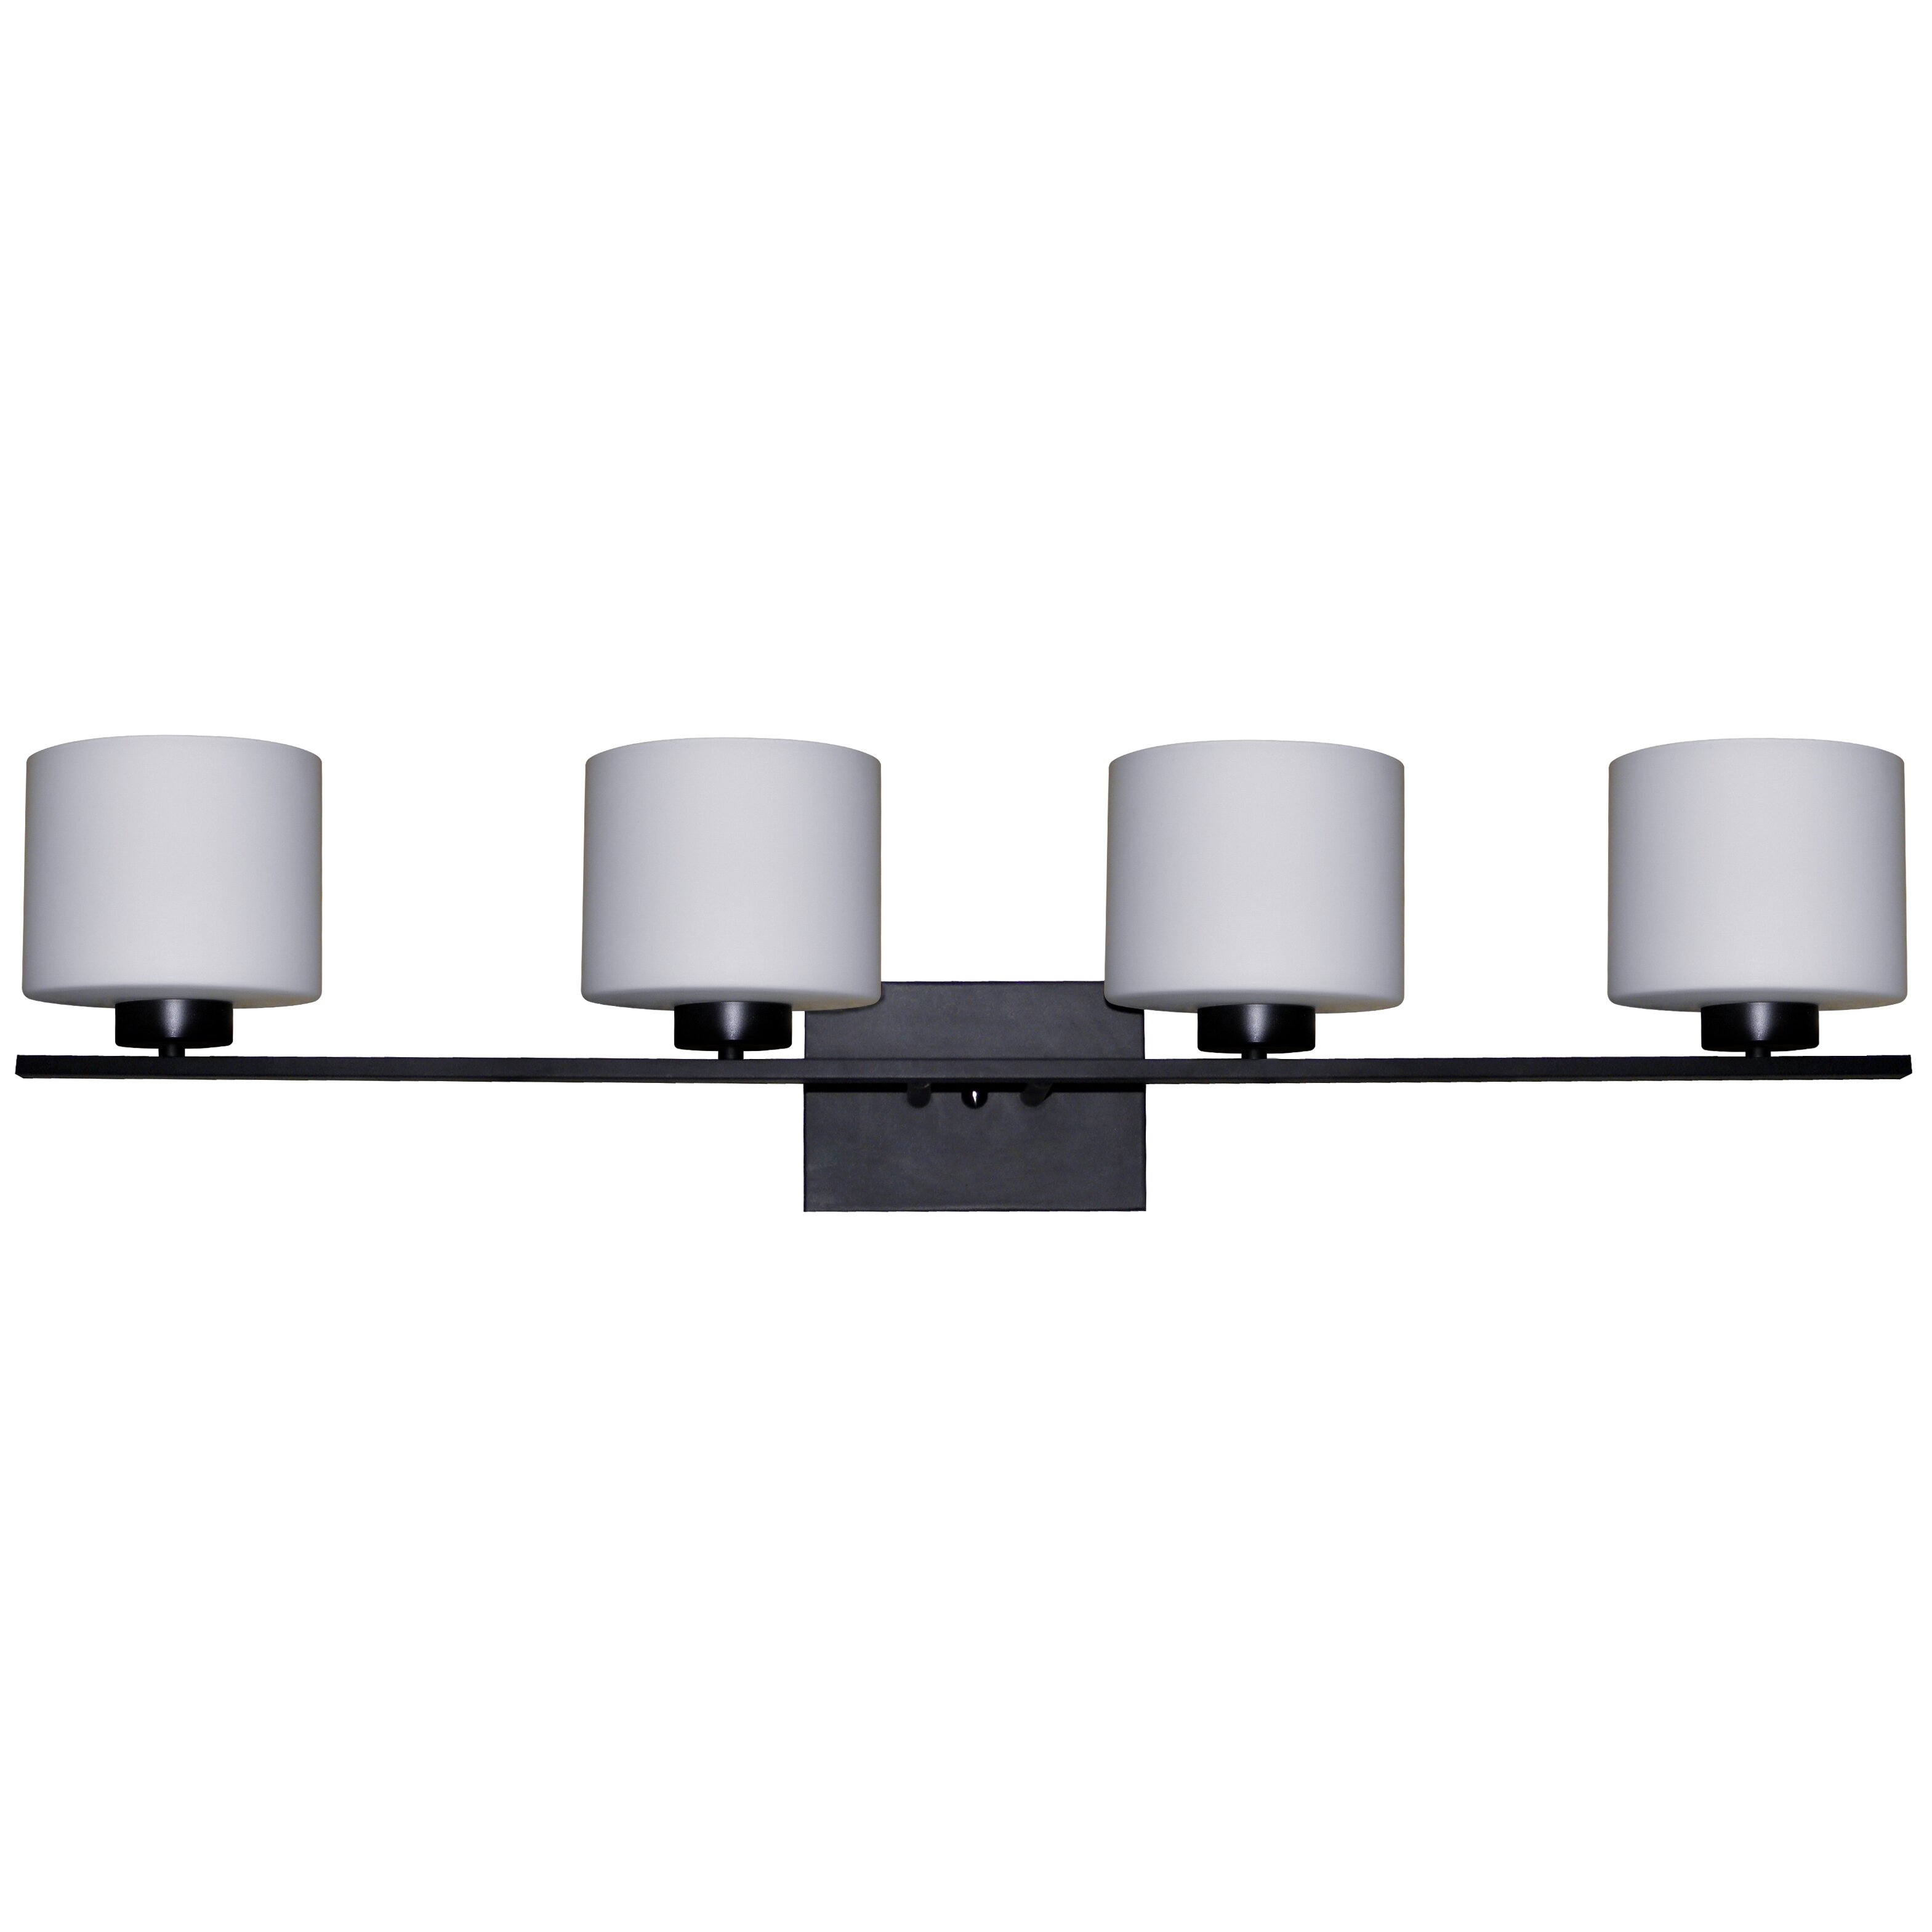 Whitfield Lighting Jaelyn 4 Light Bathroom Vanity Light Reviews Wayfair